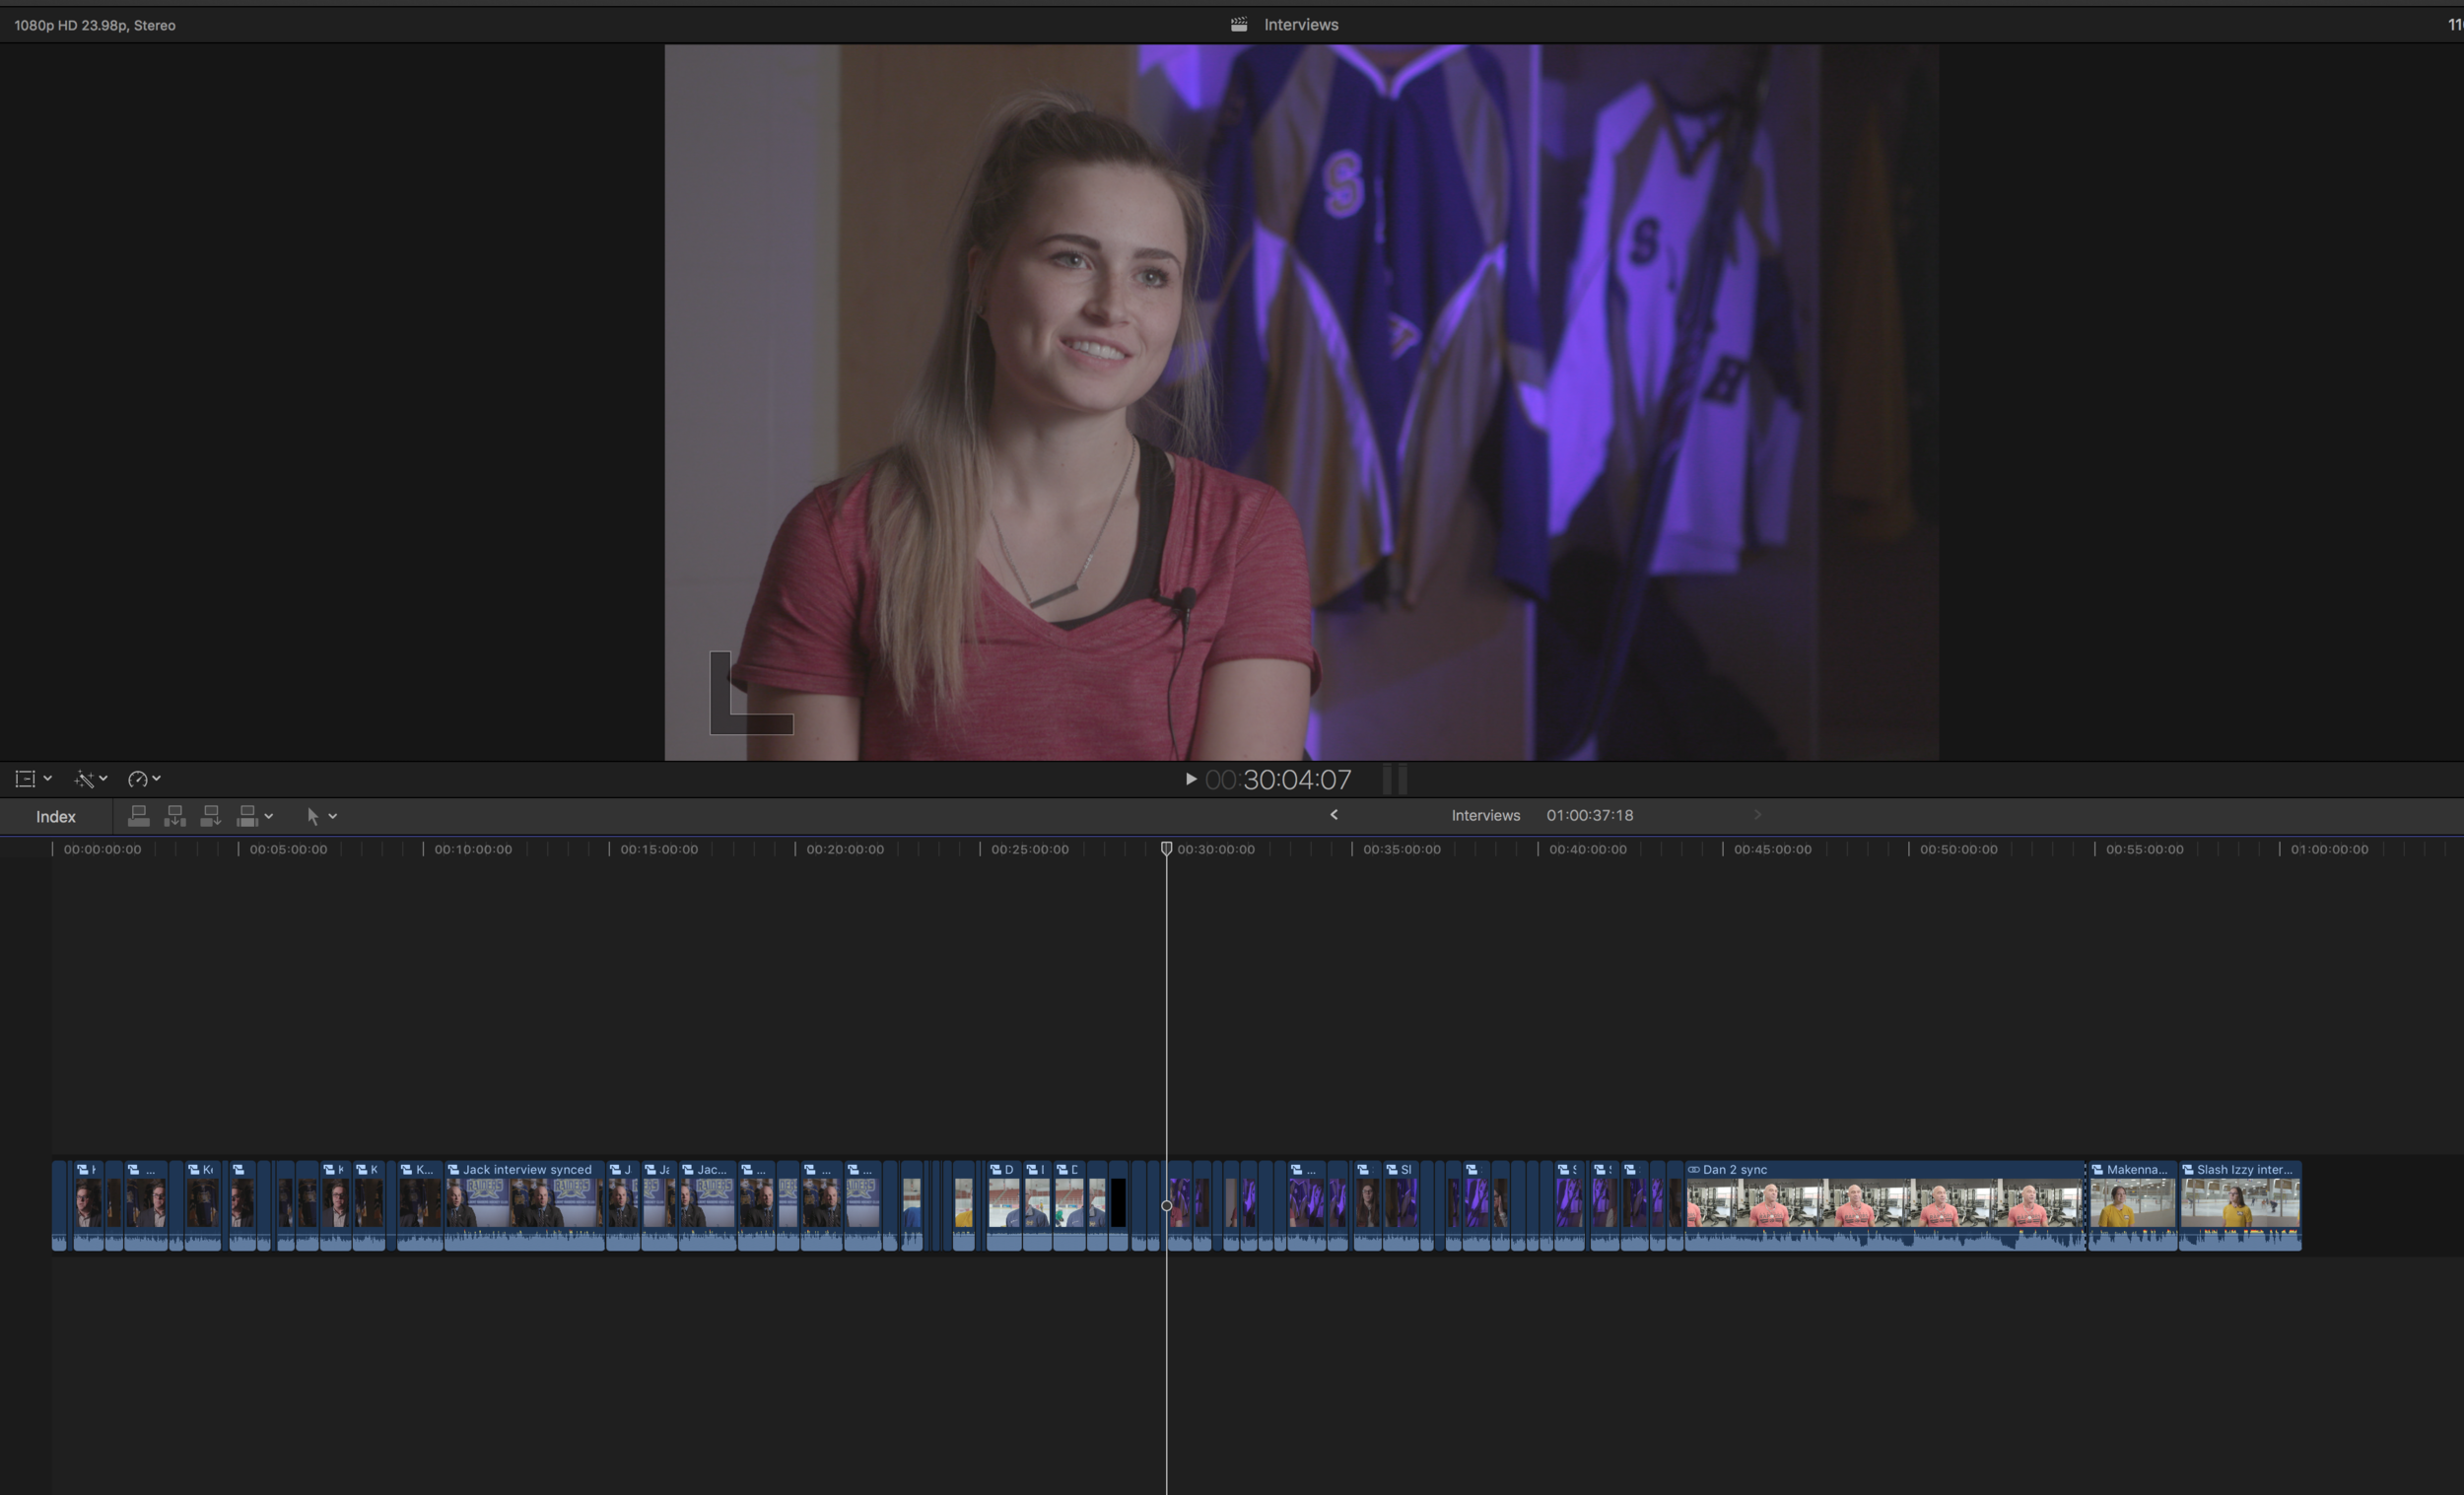 The final cut Pro timeline with all the raw interviews with sound synced.